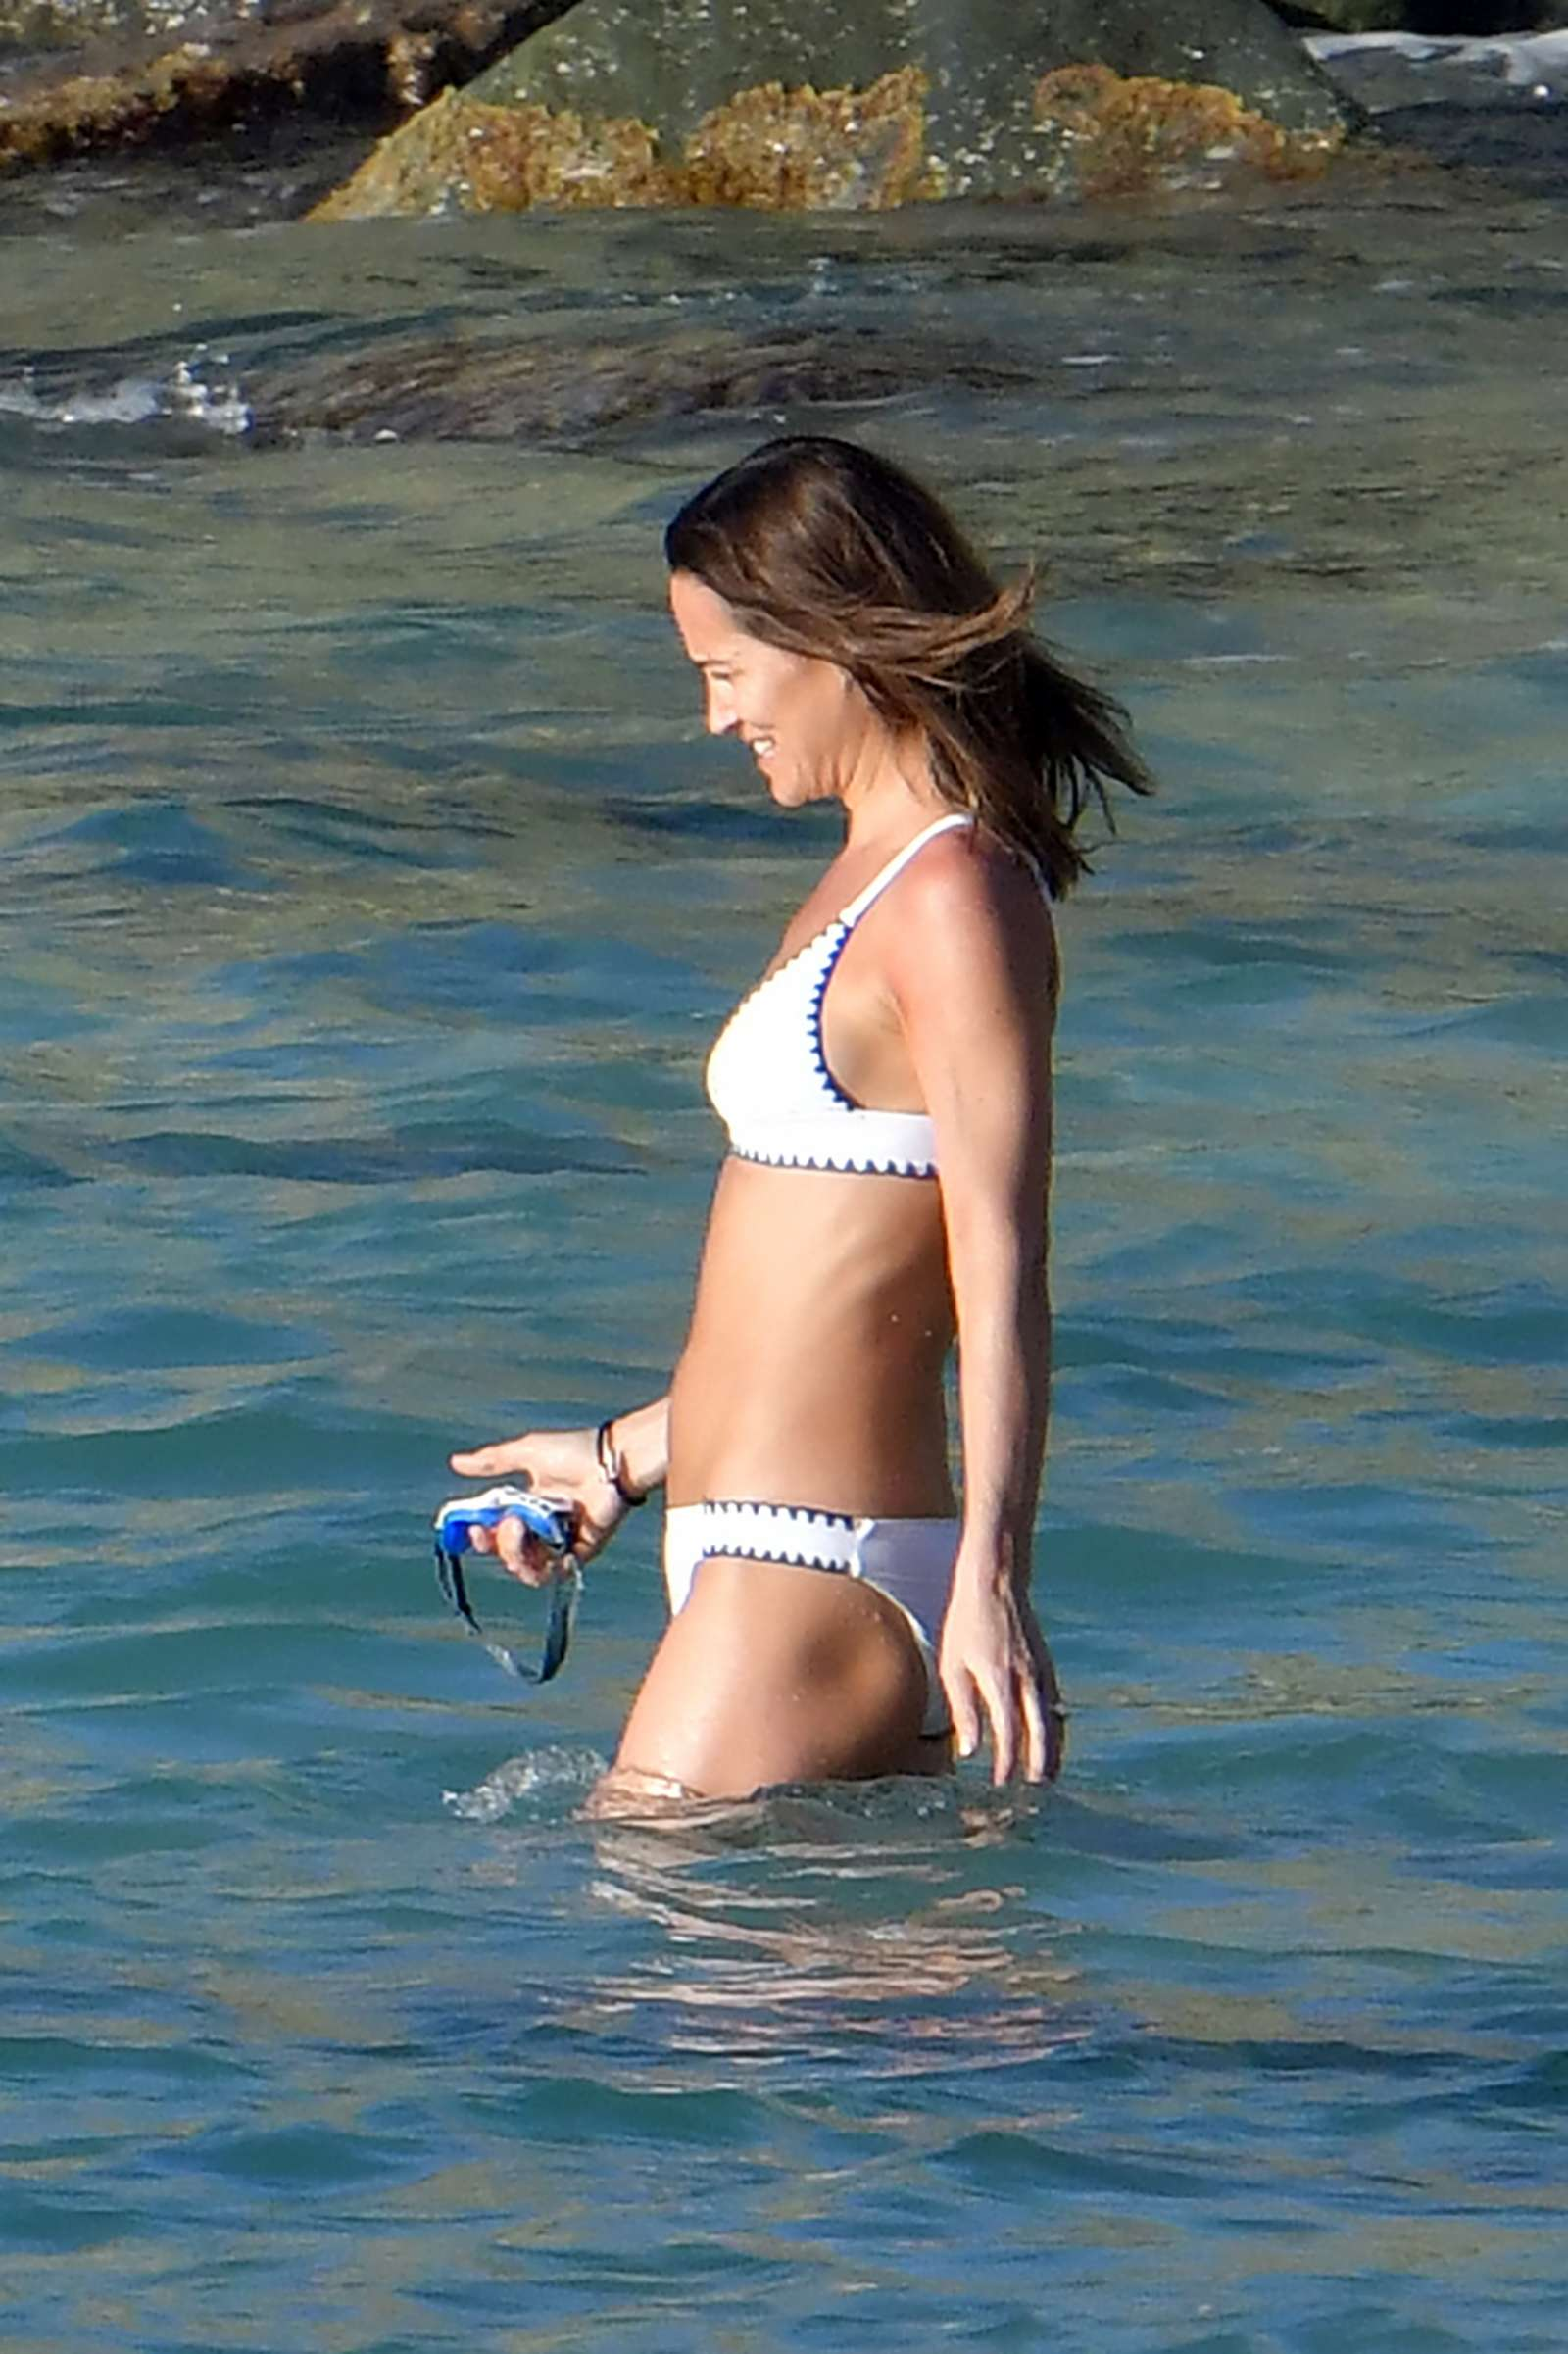 2019 Pippa Middleton nudes (23 foto and video), Sexy, Sideboobs, Selfie, in bikini 2017